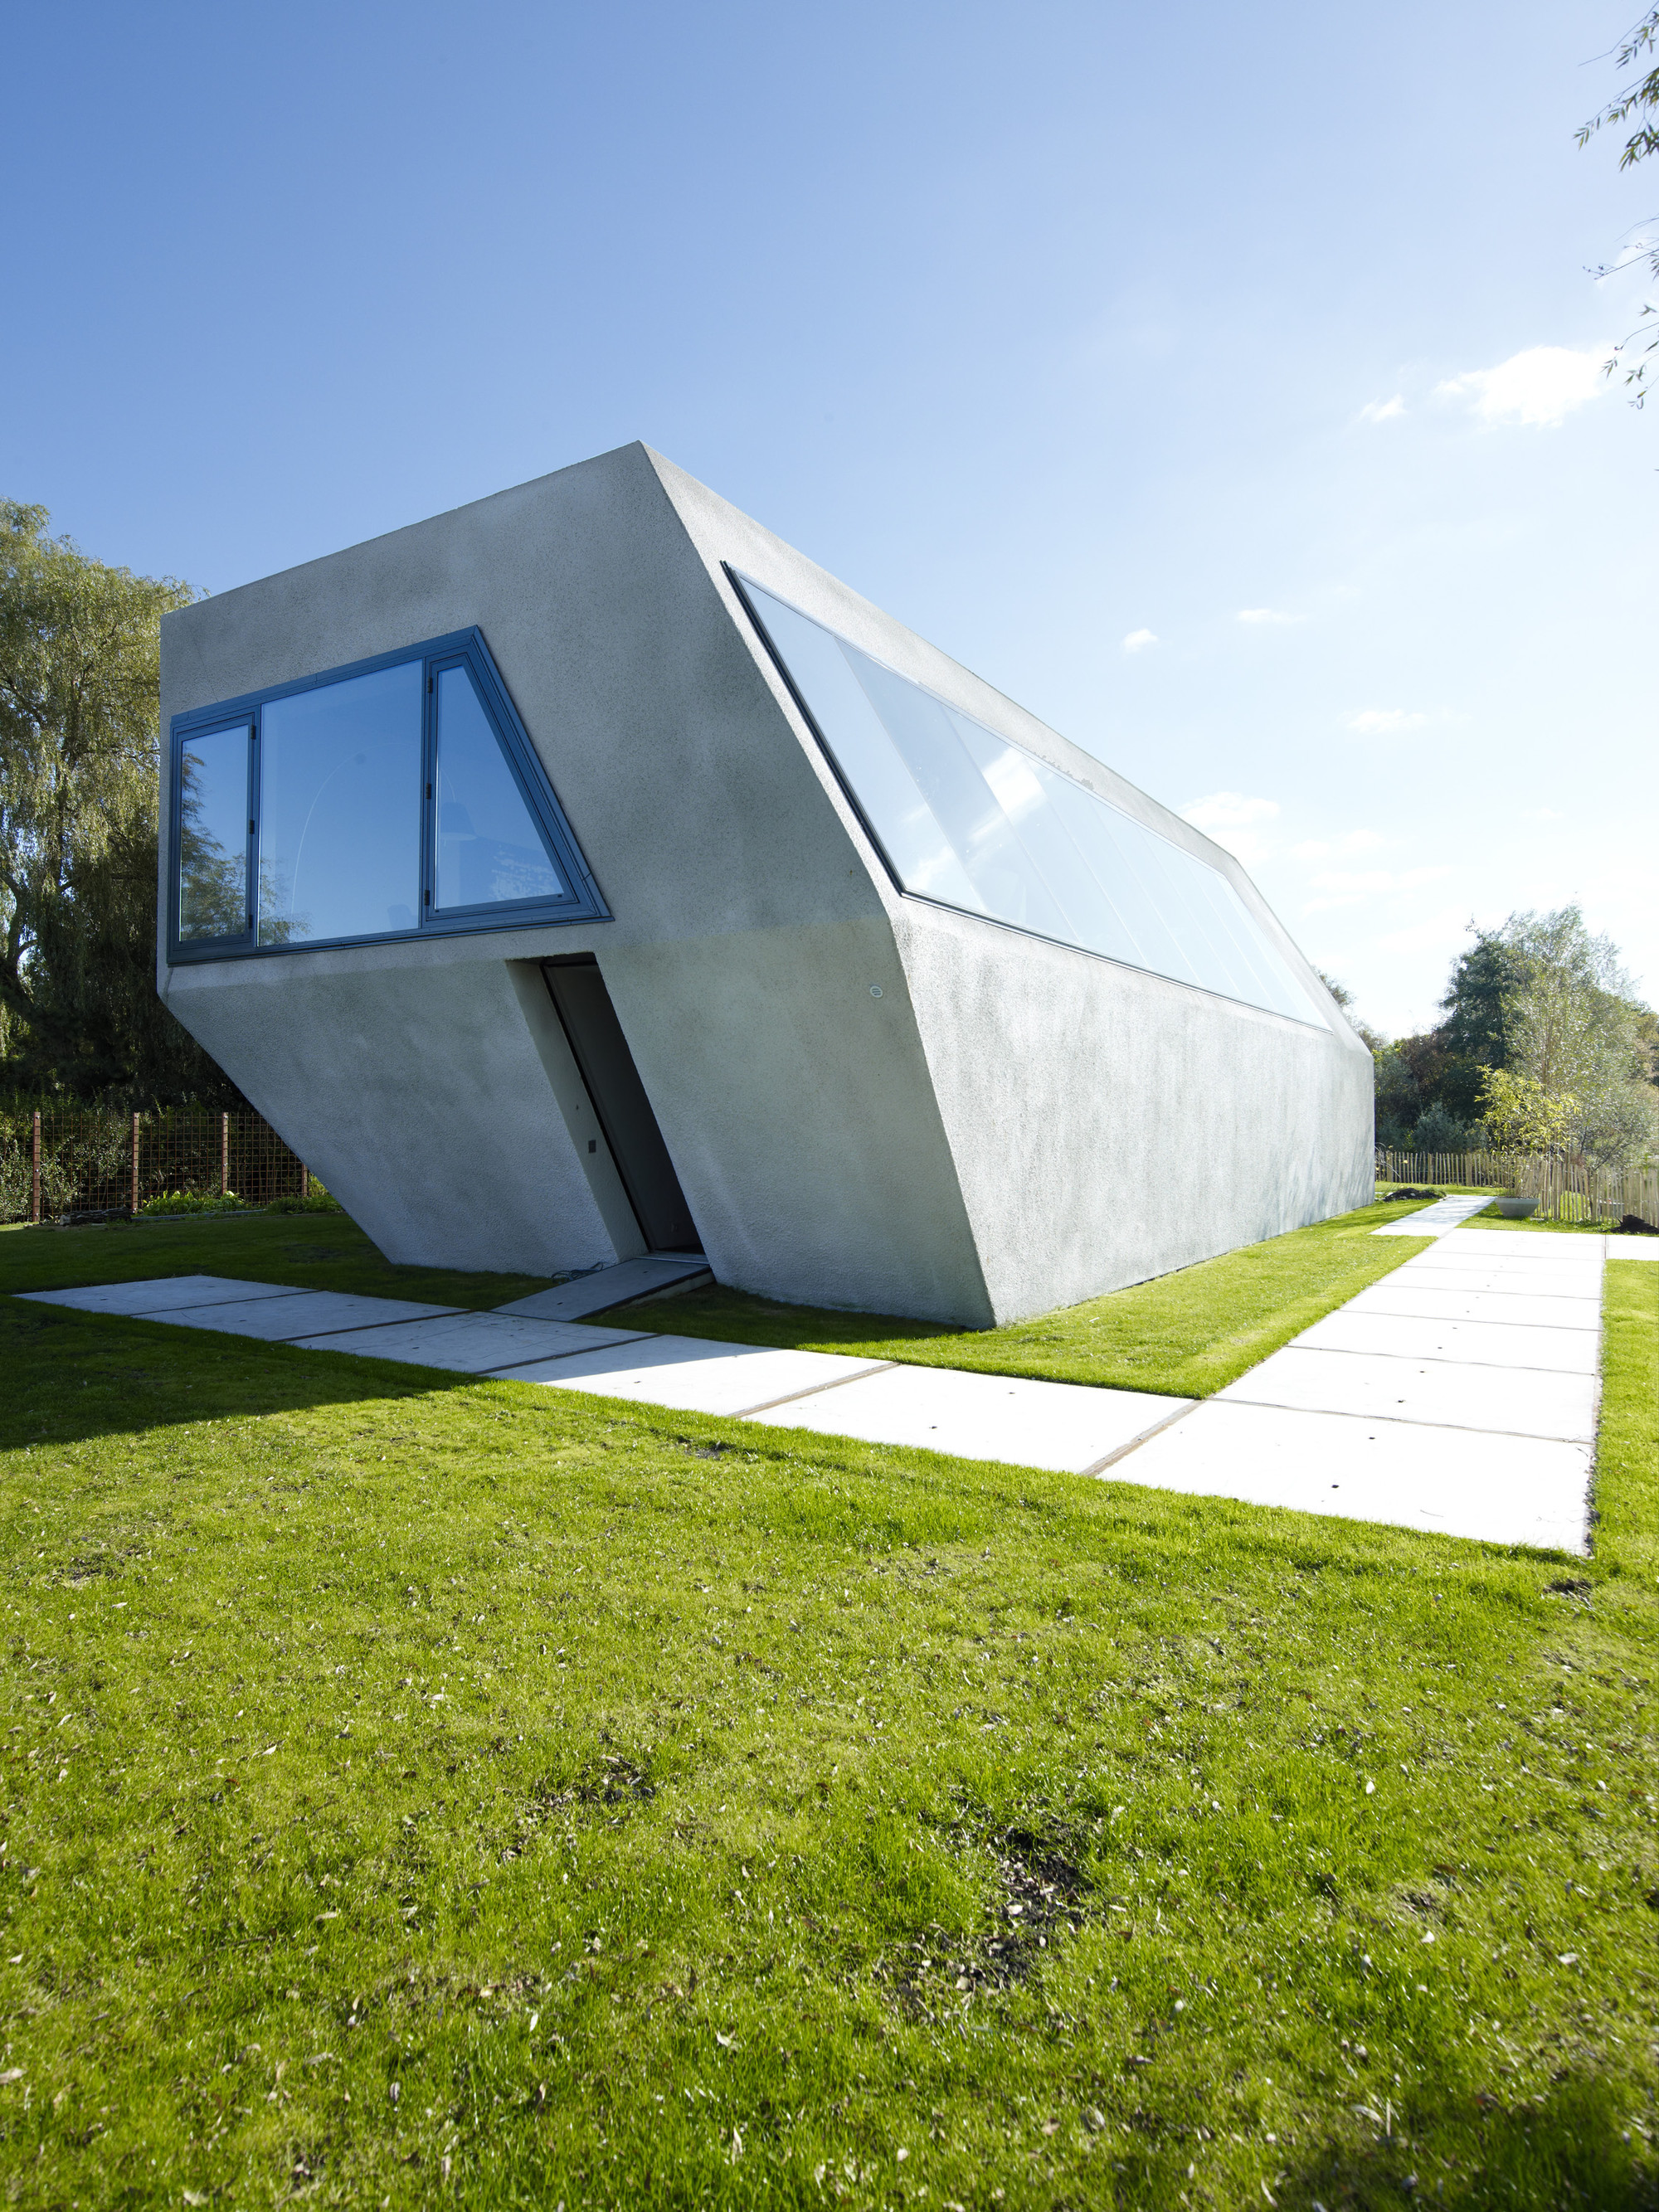 House SODAE / VMX Architects, Courtesy of VMX Architects